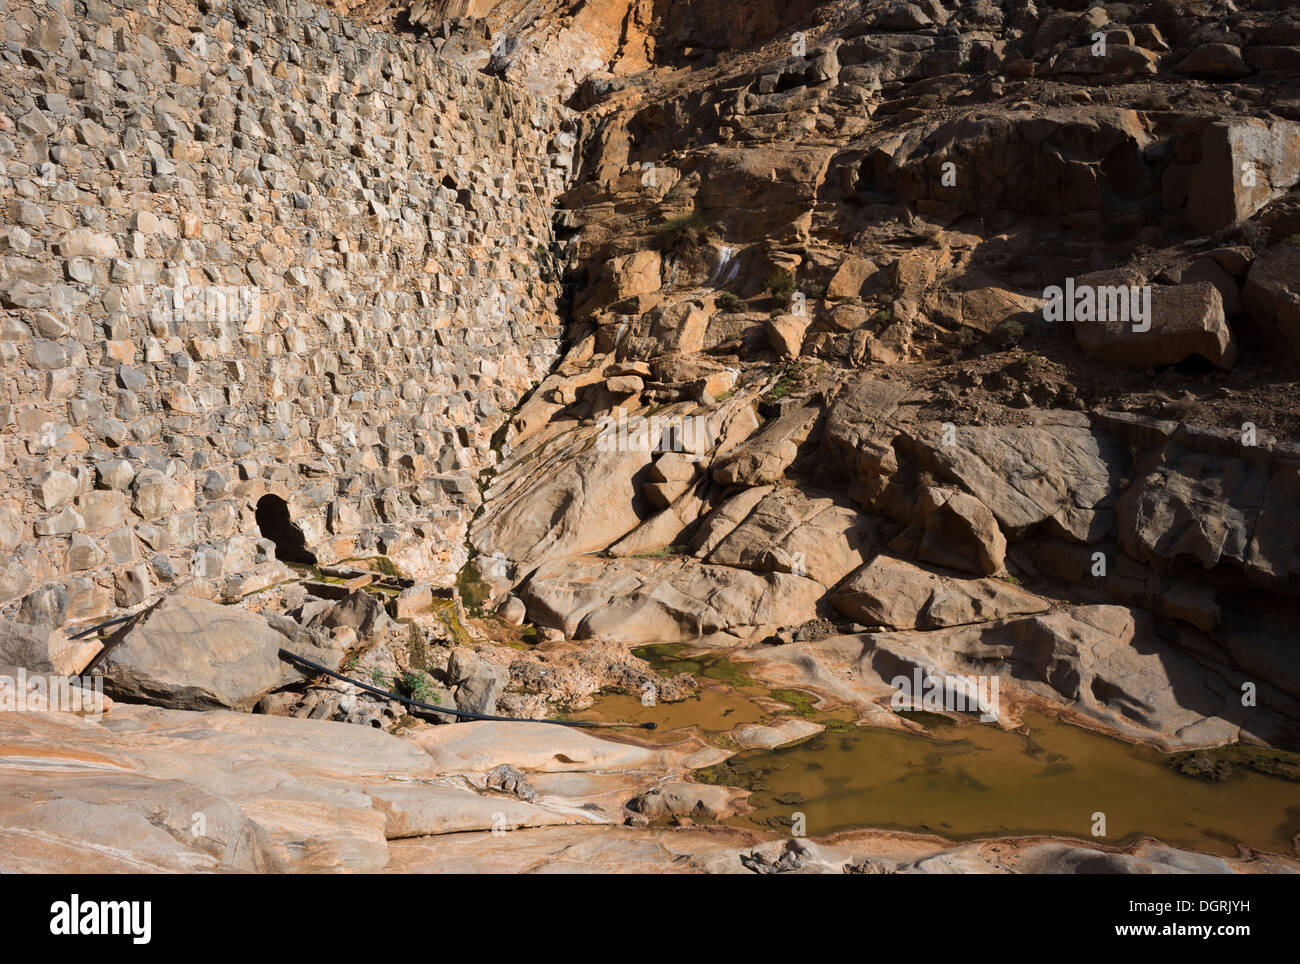 The dam of Presa de las Penitas, made of syenite rock from the nearby intrusion, in Barranco de las Penitas, Vega de Rio Palmas - Stock Image